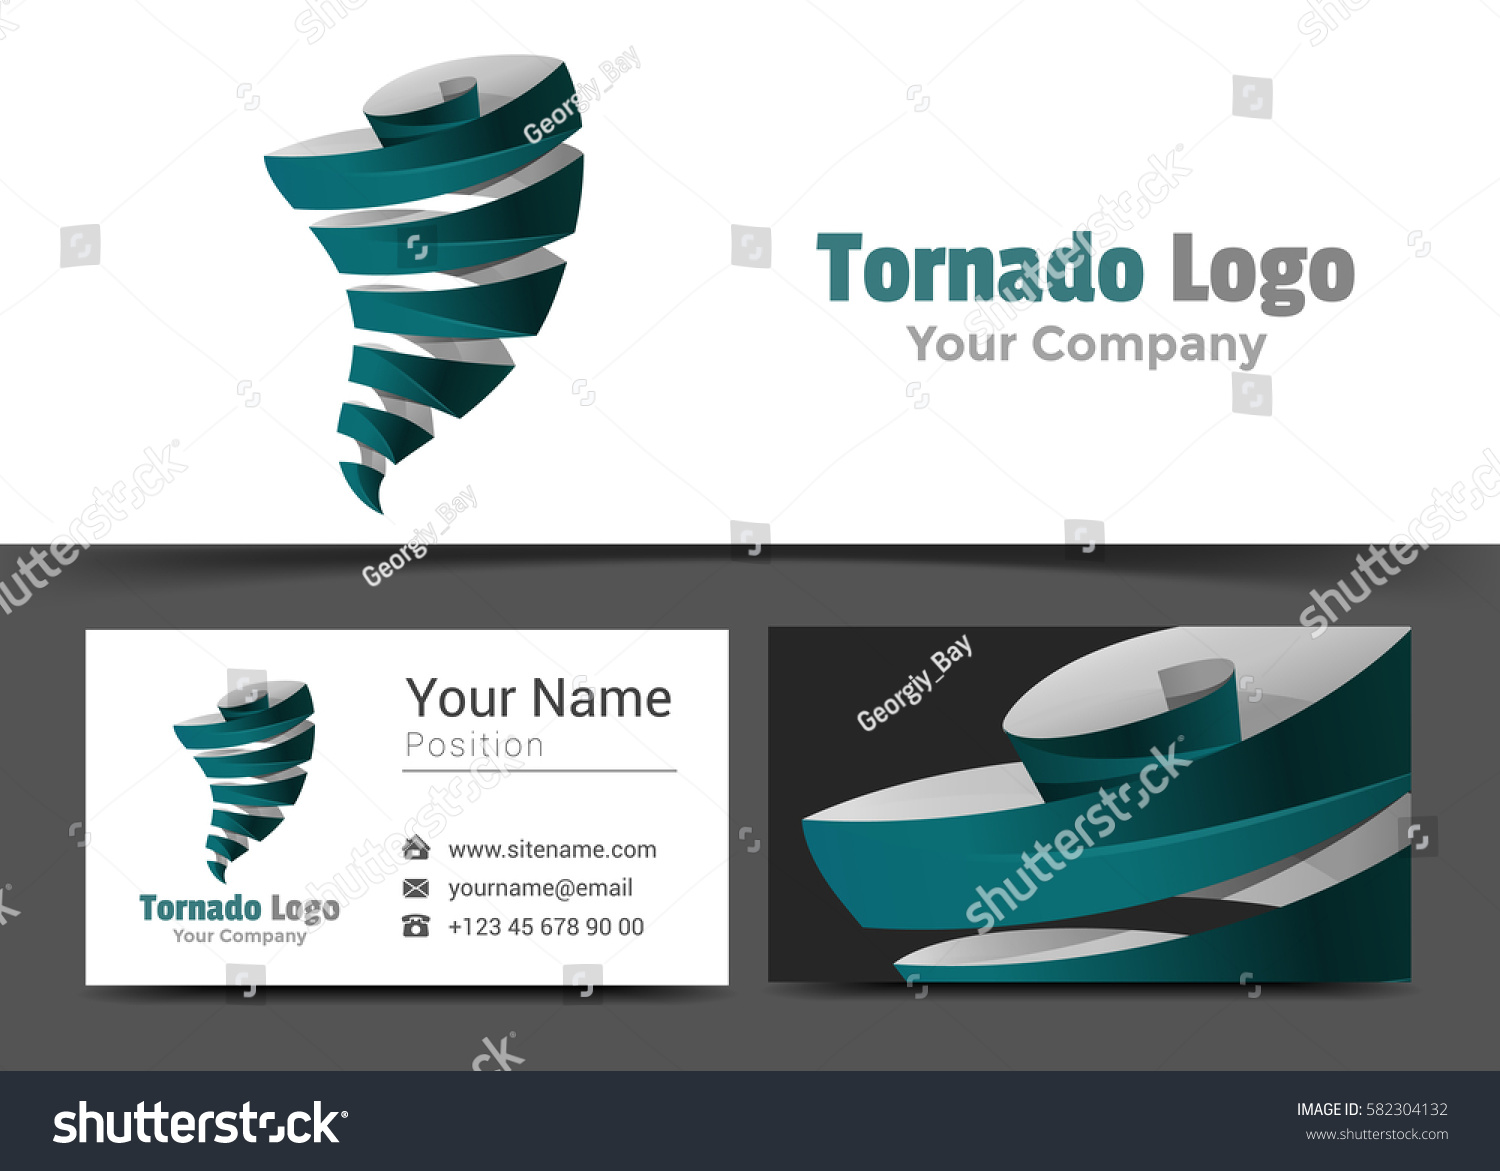 Tornadoes corporate logo business card sign stock vector 582304132 tornadoes corporate logo and business card sign template creative design with colorful logotype visual identity magicingreecefo Images